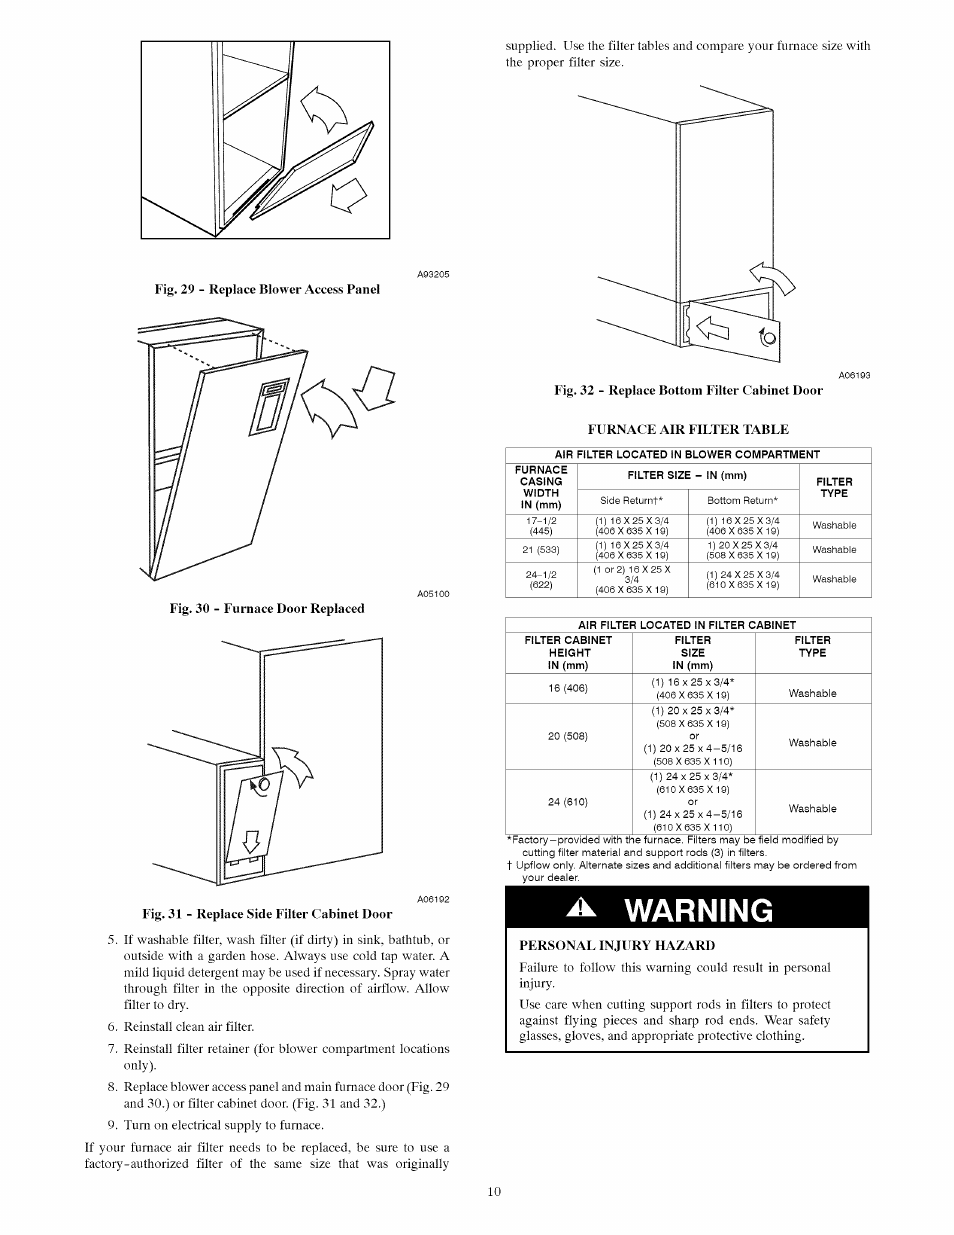 Warning, Furnace air filter table, Personal injury hazard | Carrier  INFINITY ICS 58MVC User Manual | Page 10 / 14